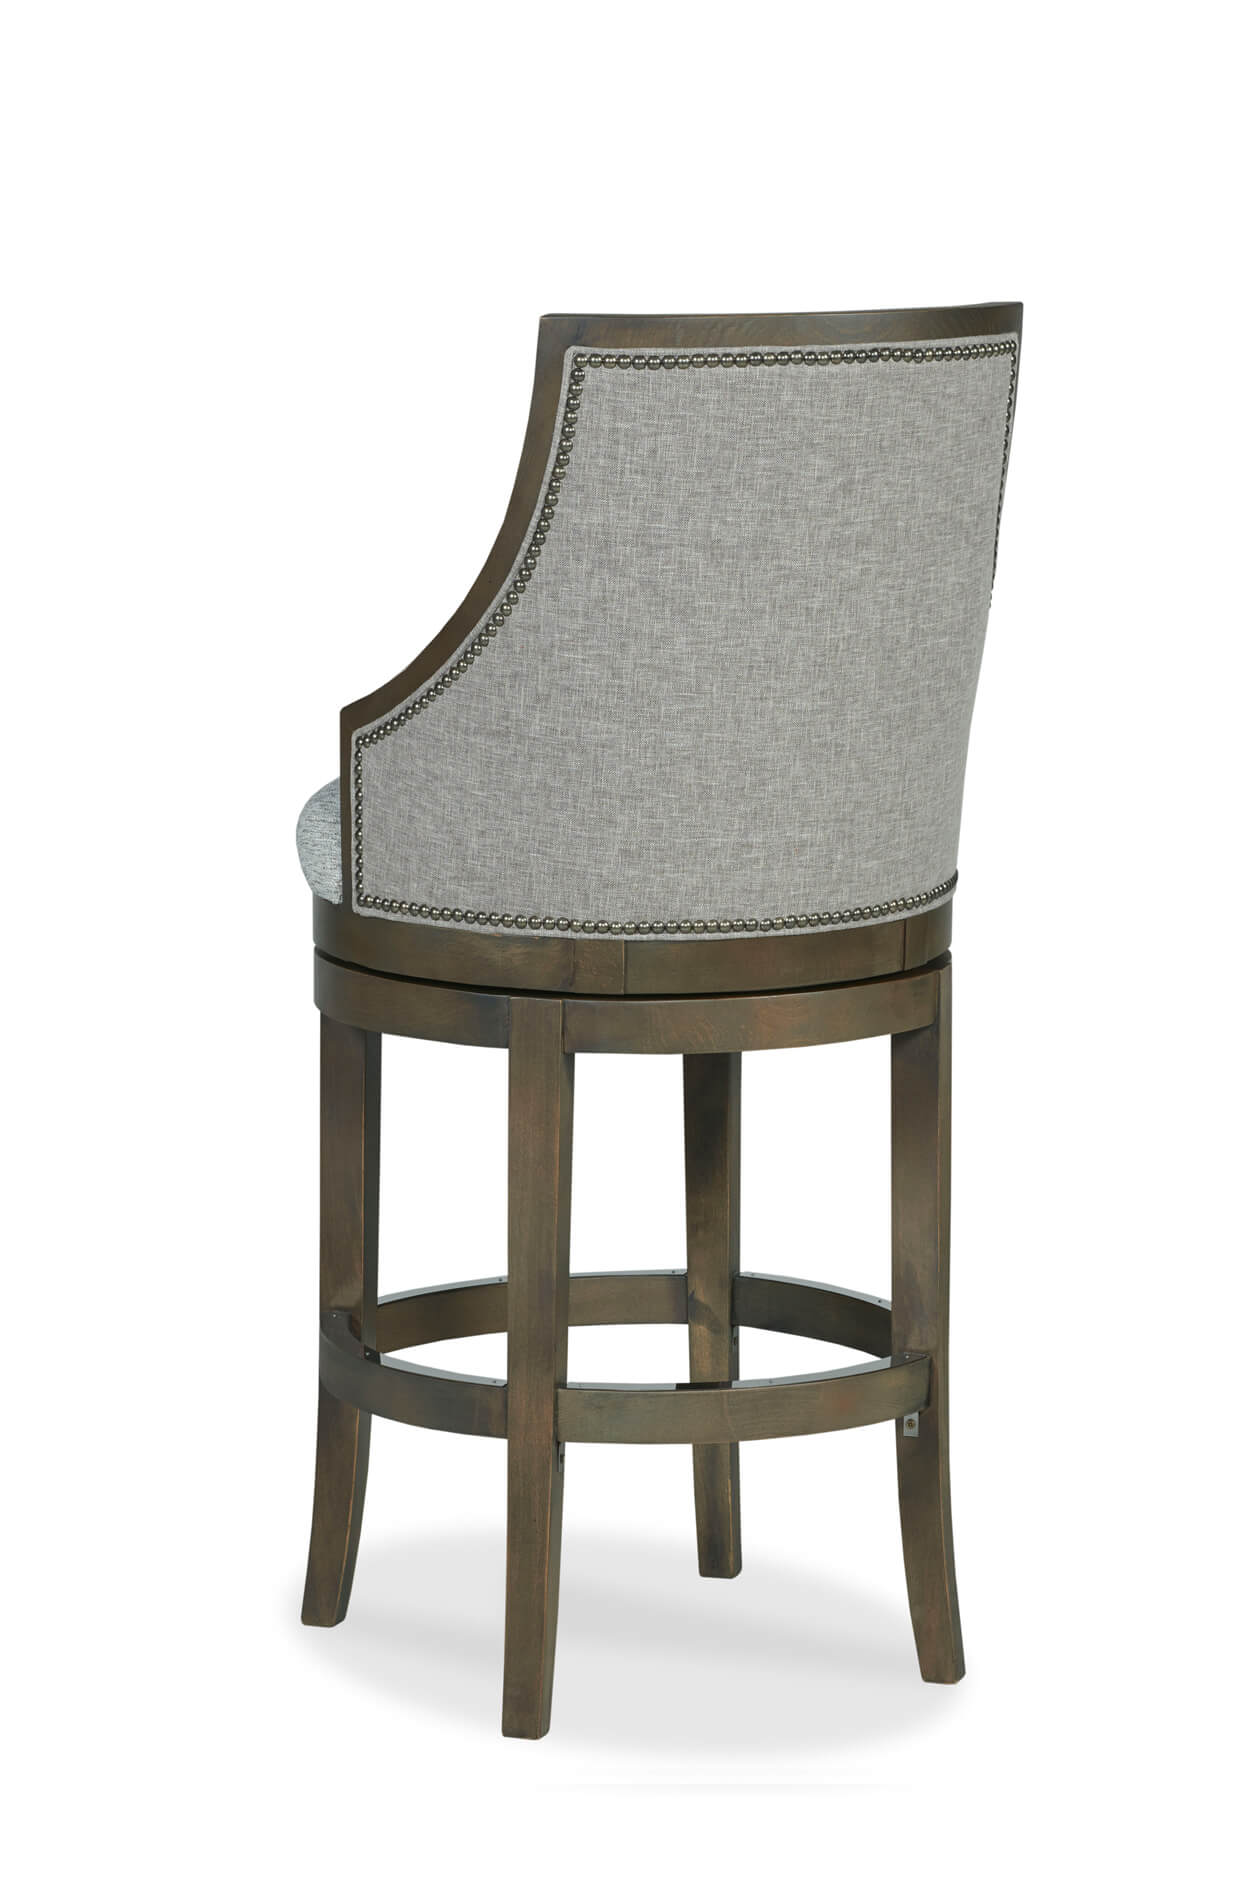 separation shoes 3ce31 55487 Robroy Upholstered Wooden Swivel Stool with Back